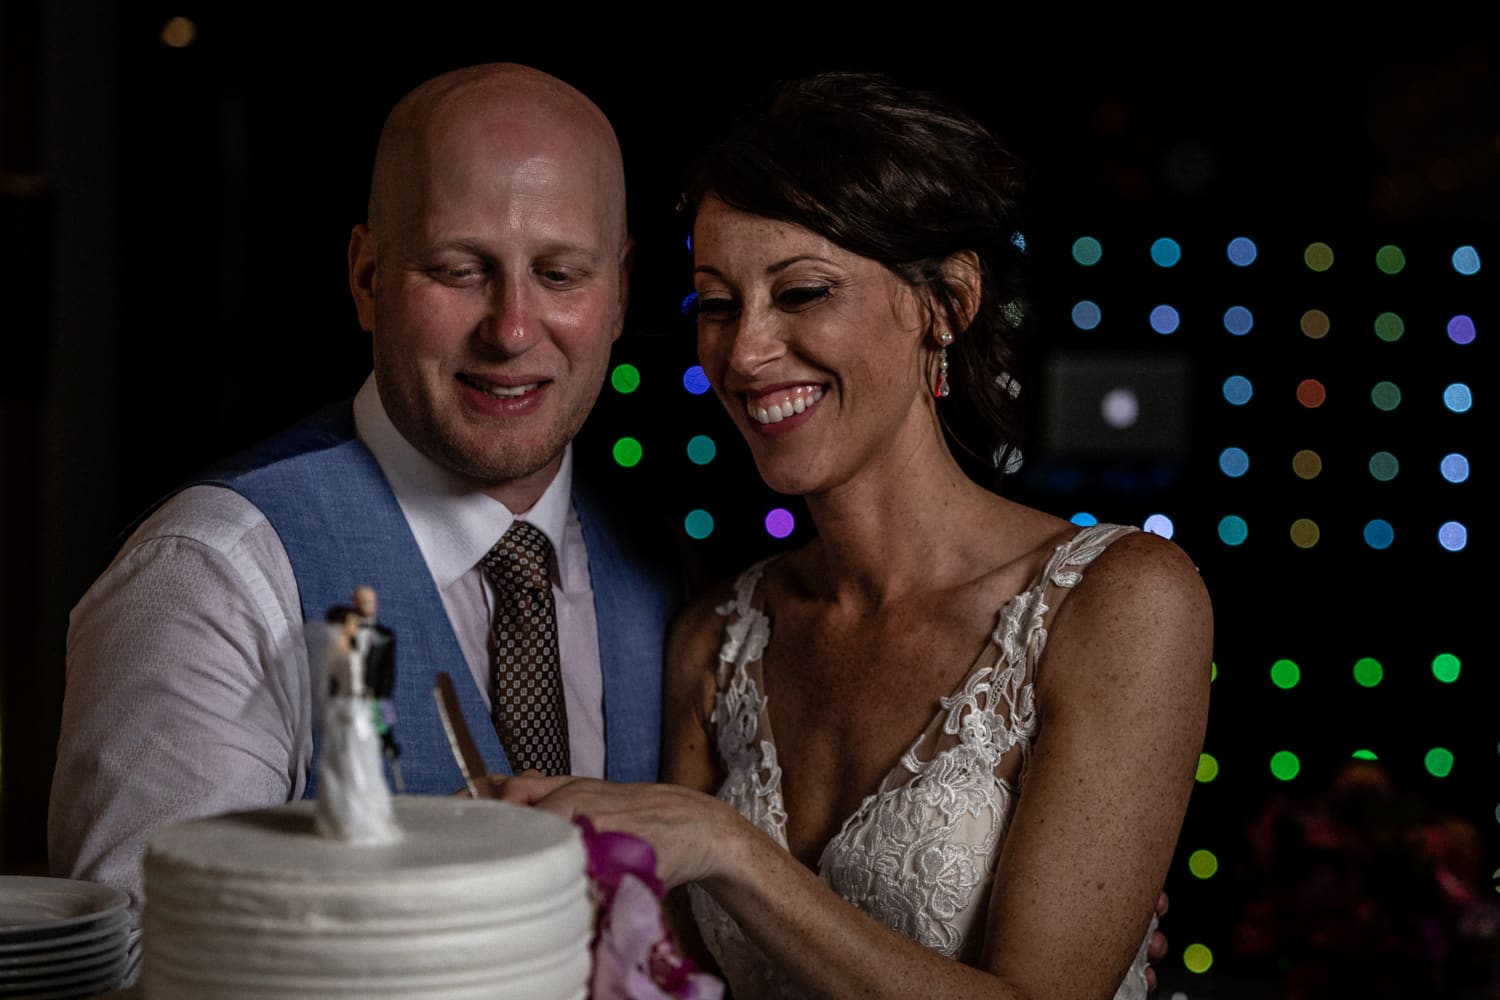 Photo of bride and groom smiling and cutting wedding cake at reception.